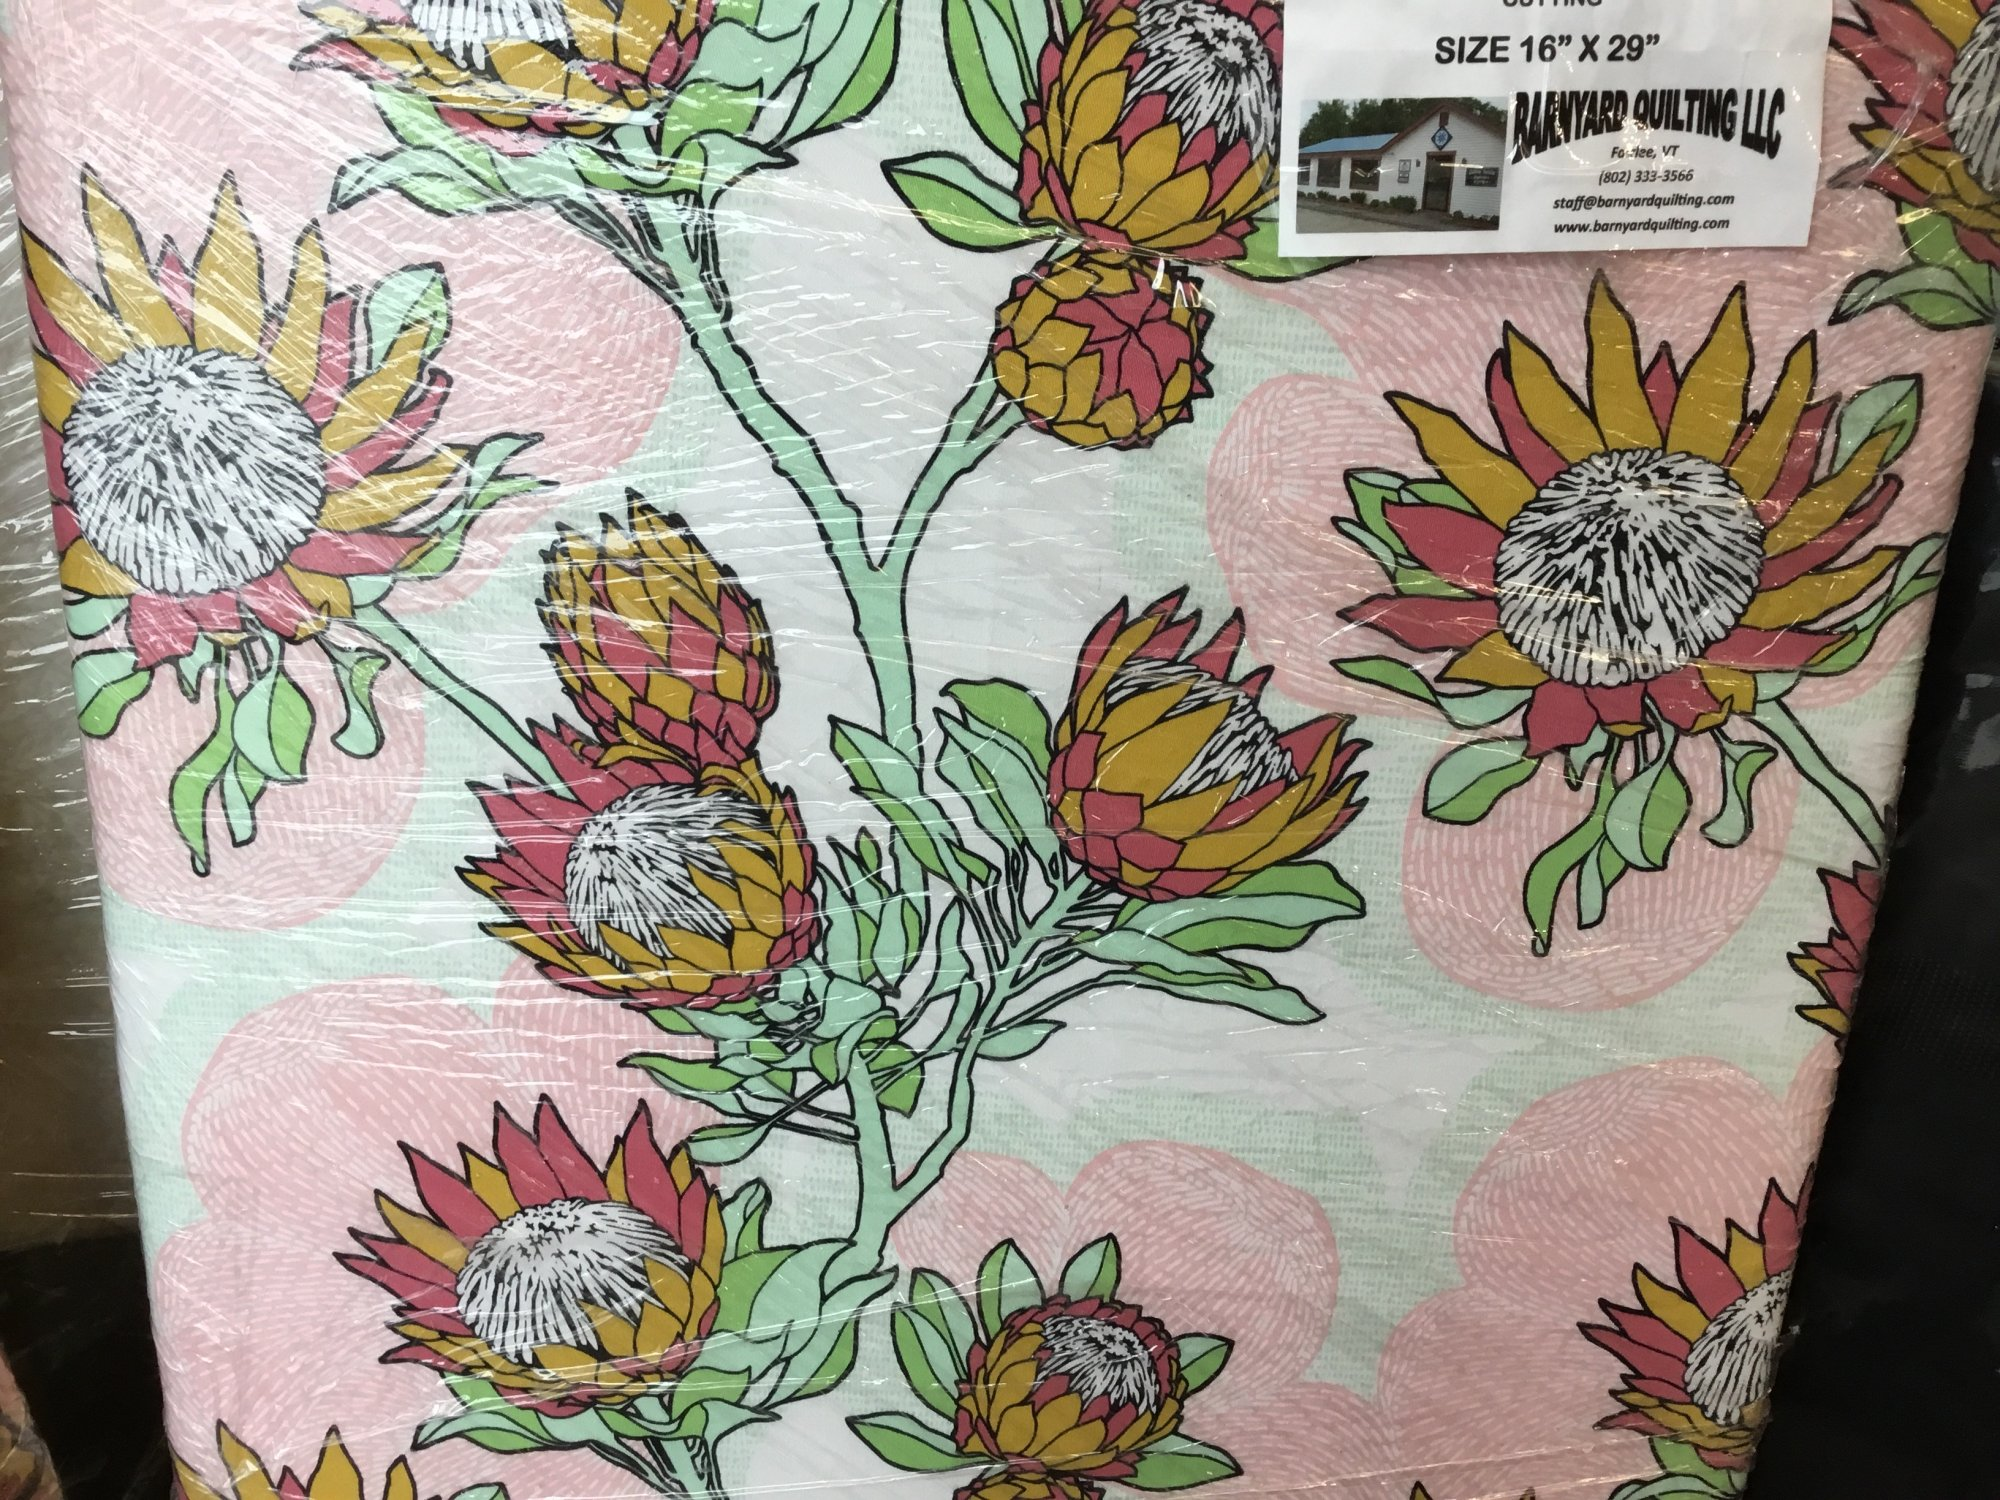 QUILTER'S DREAM TABLE TOPPER IRONING BOARD (16 X 29)